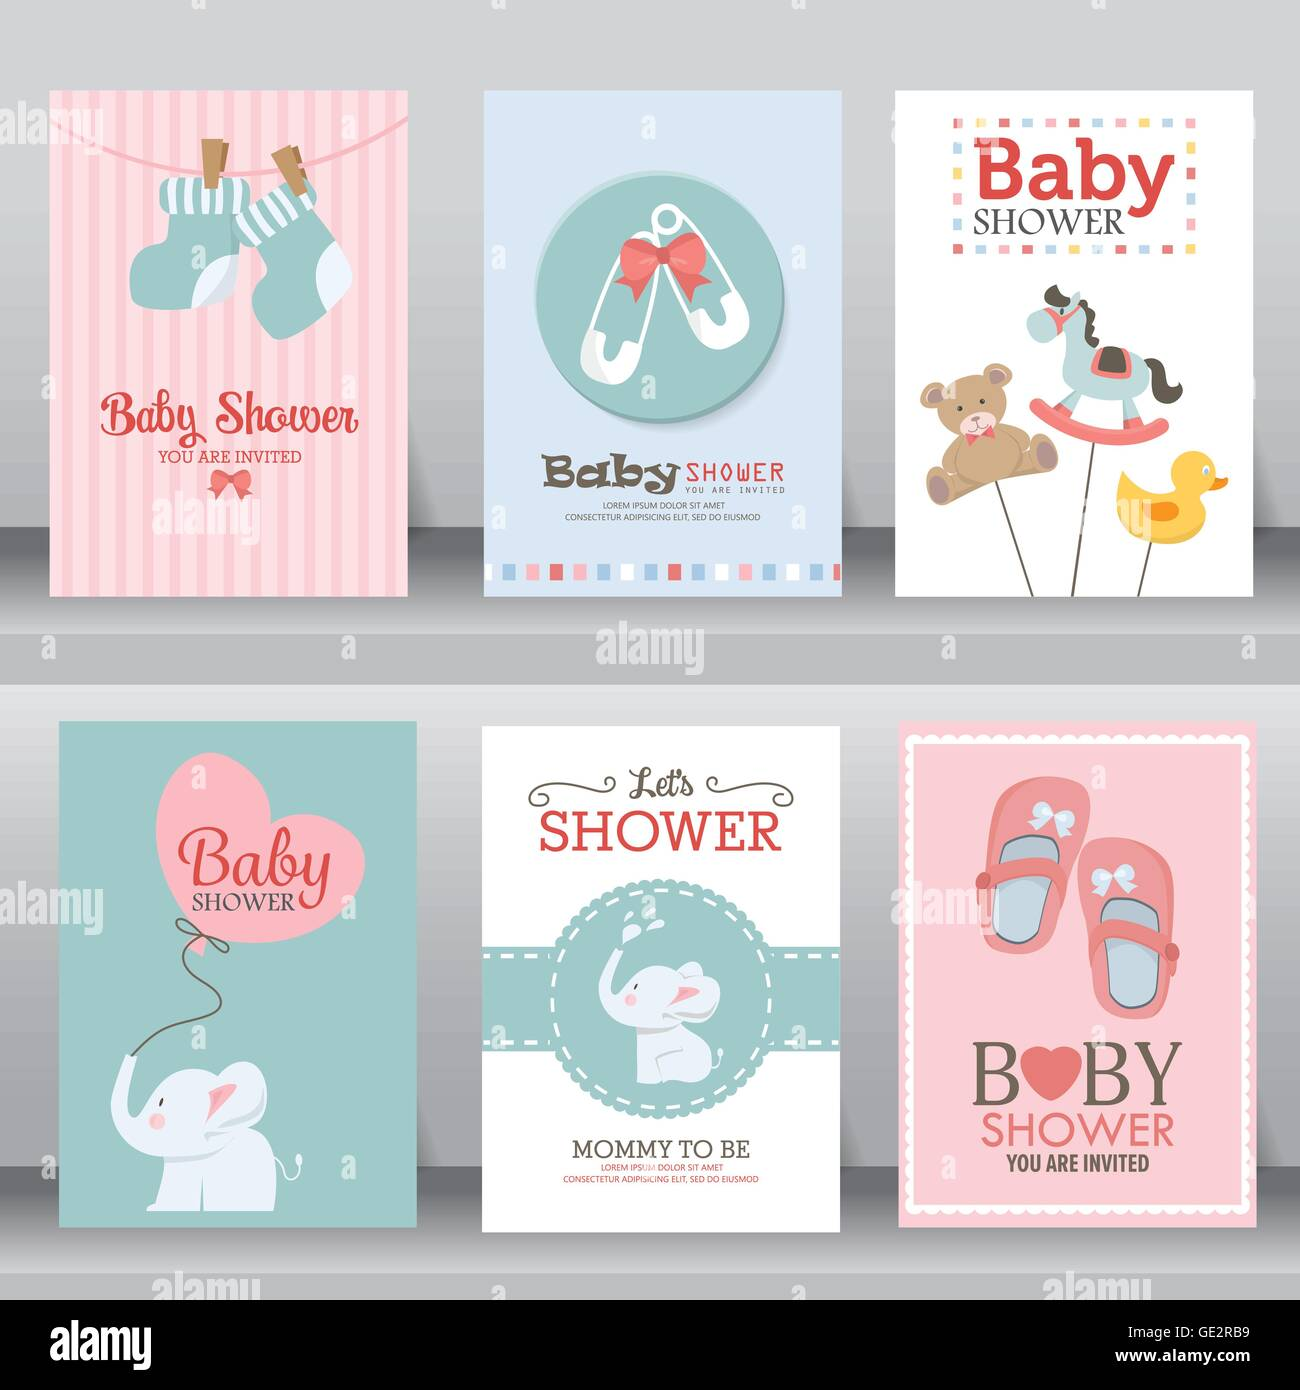 Baby shower party greeting and invitation card layout template in baby shower party greeting and invitation card layout template in a4 size vector illustration stopboris Choice Image